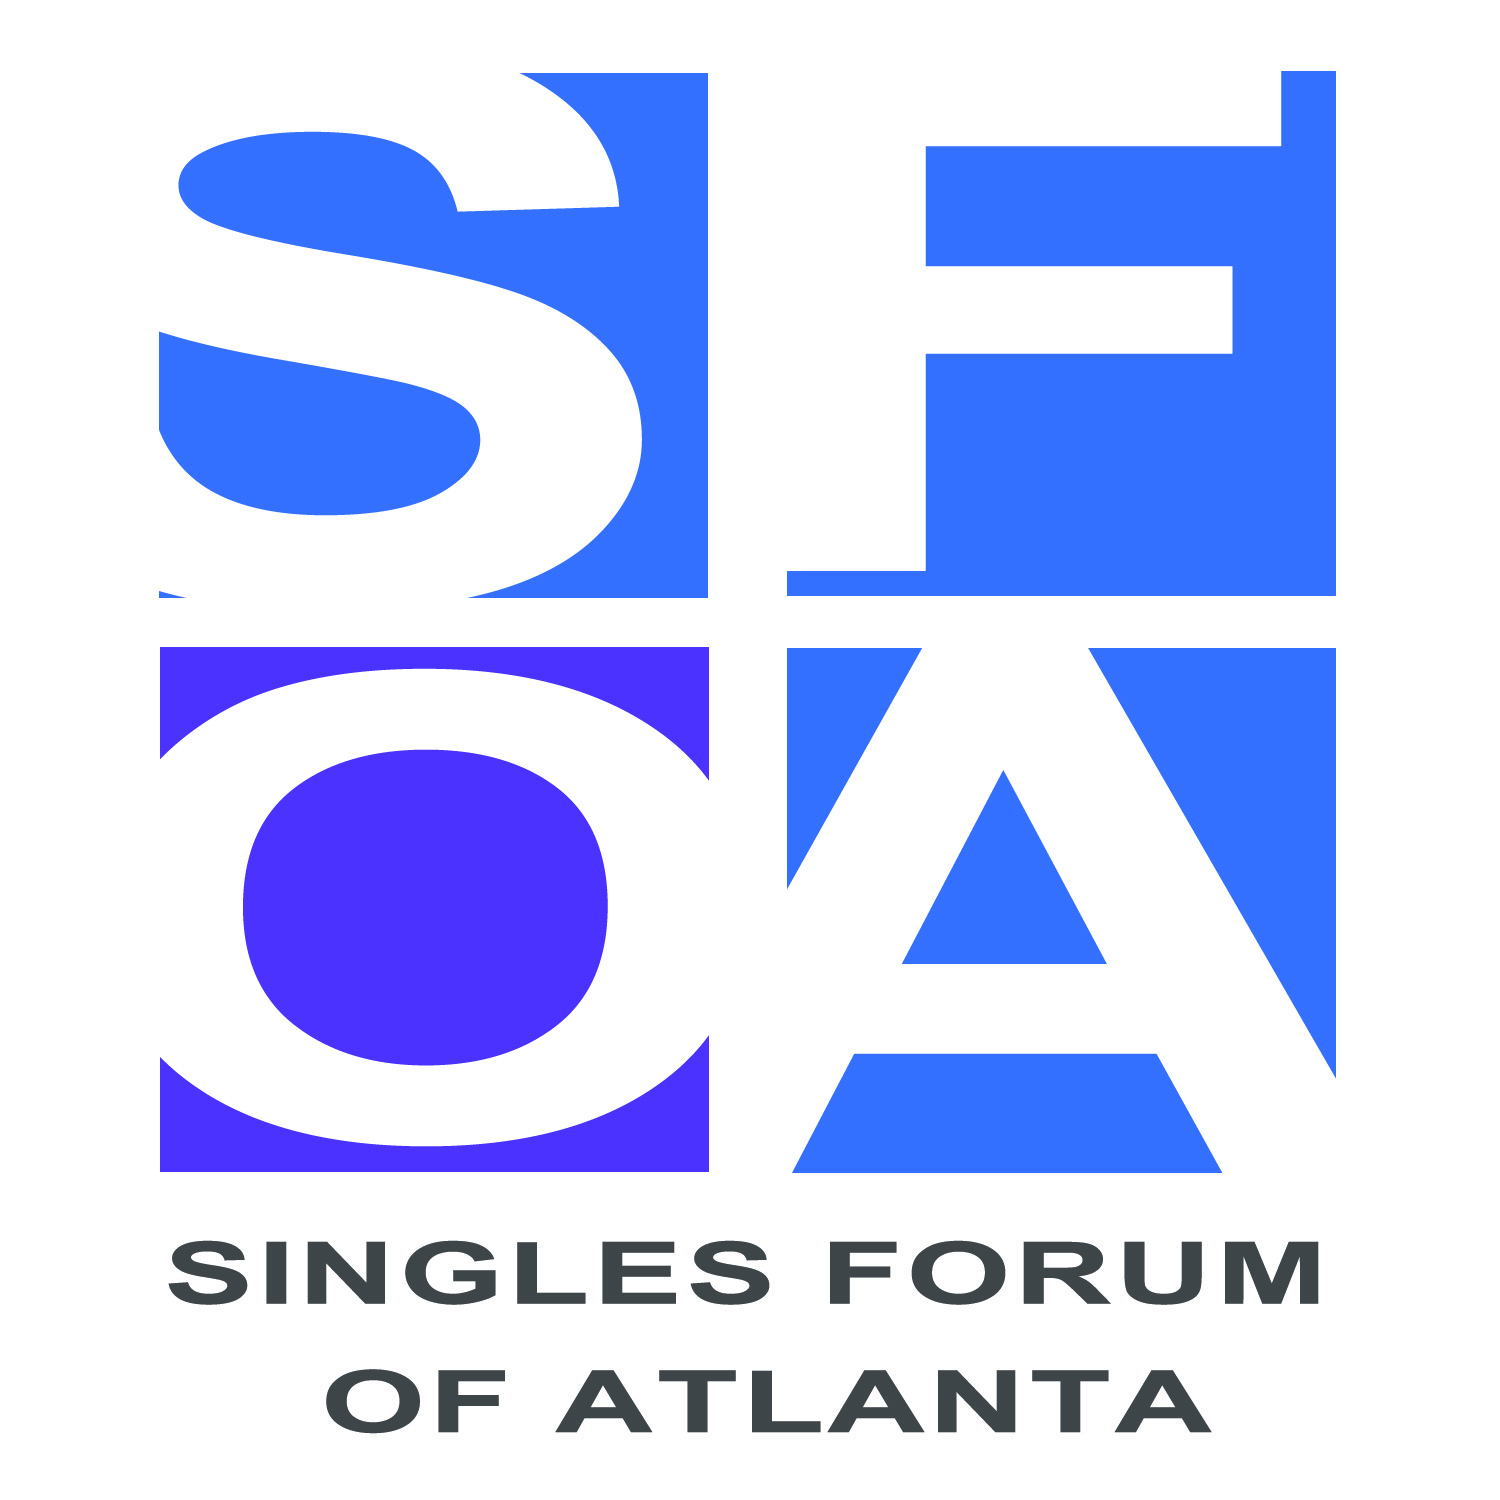 Project: Logo - Single Forum of Atlanta